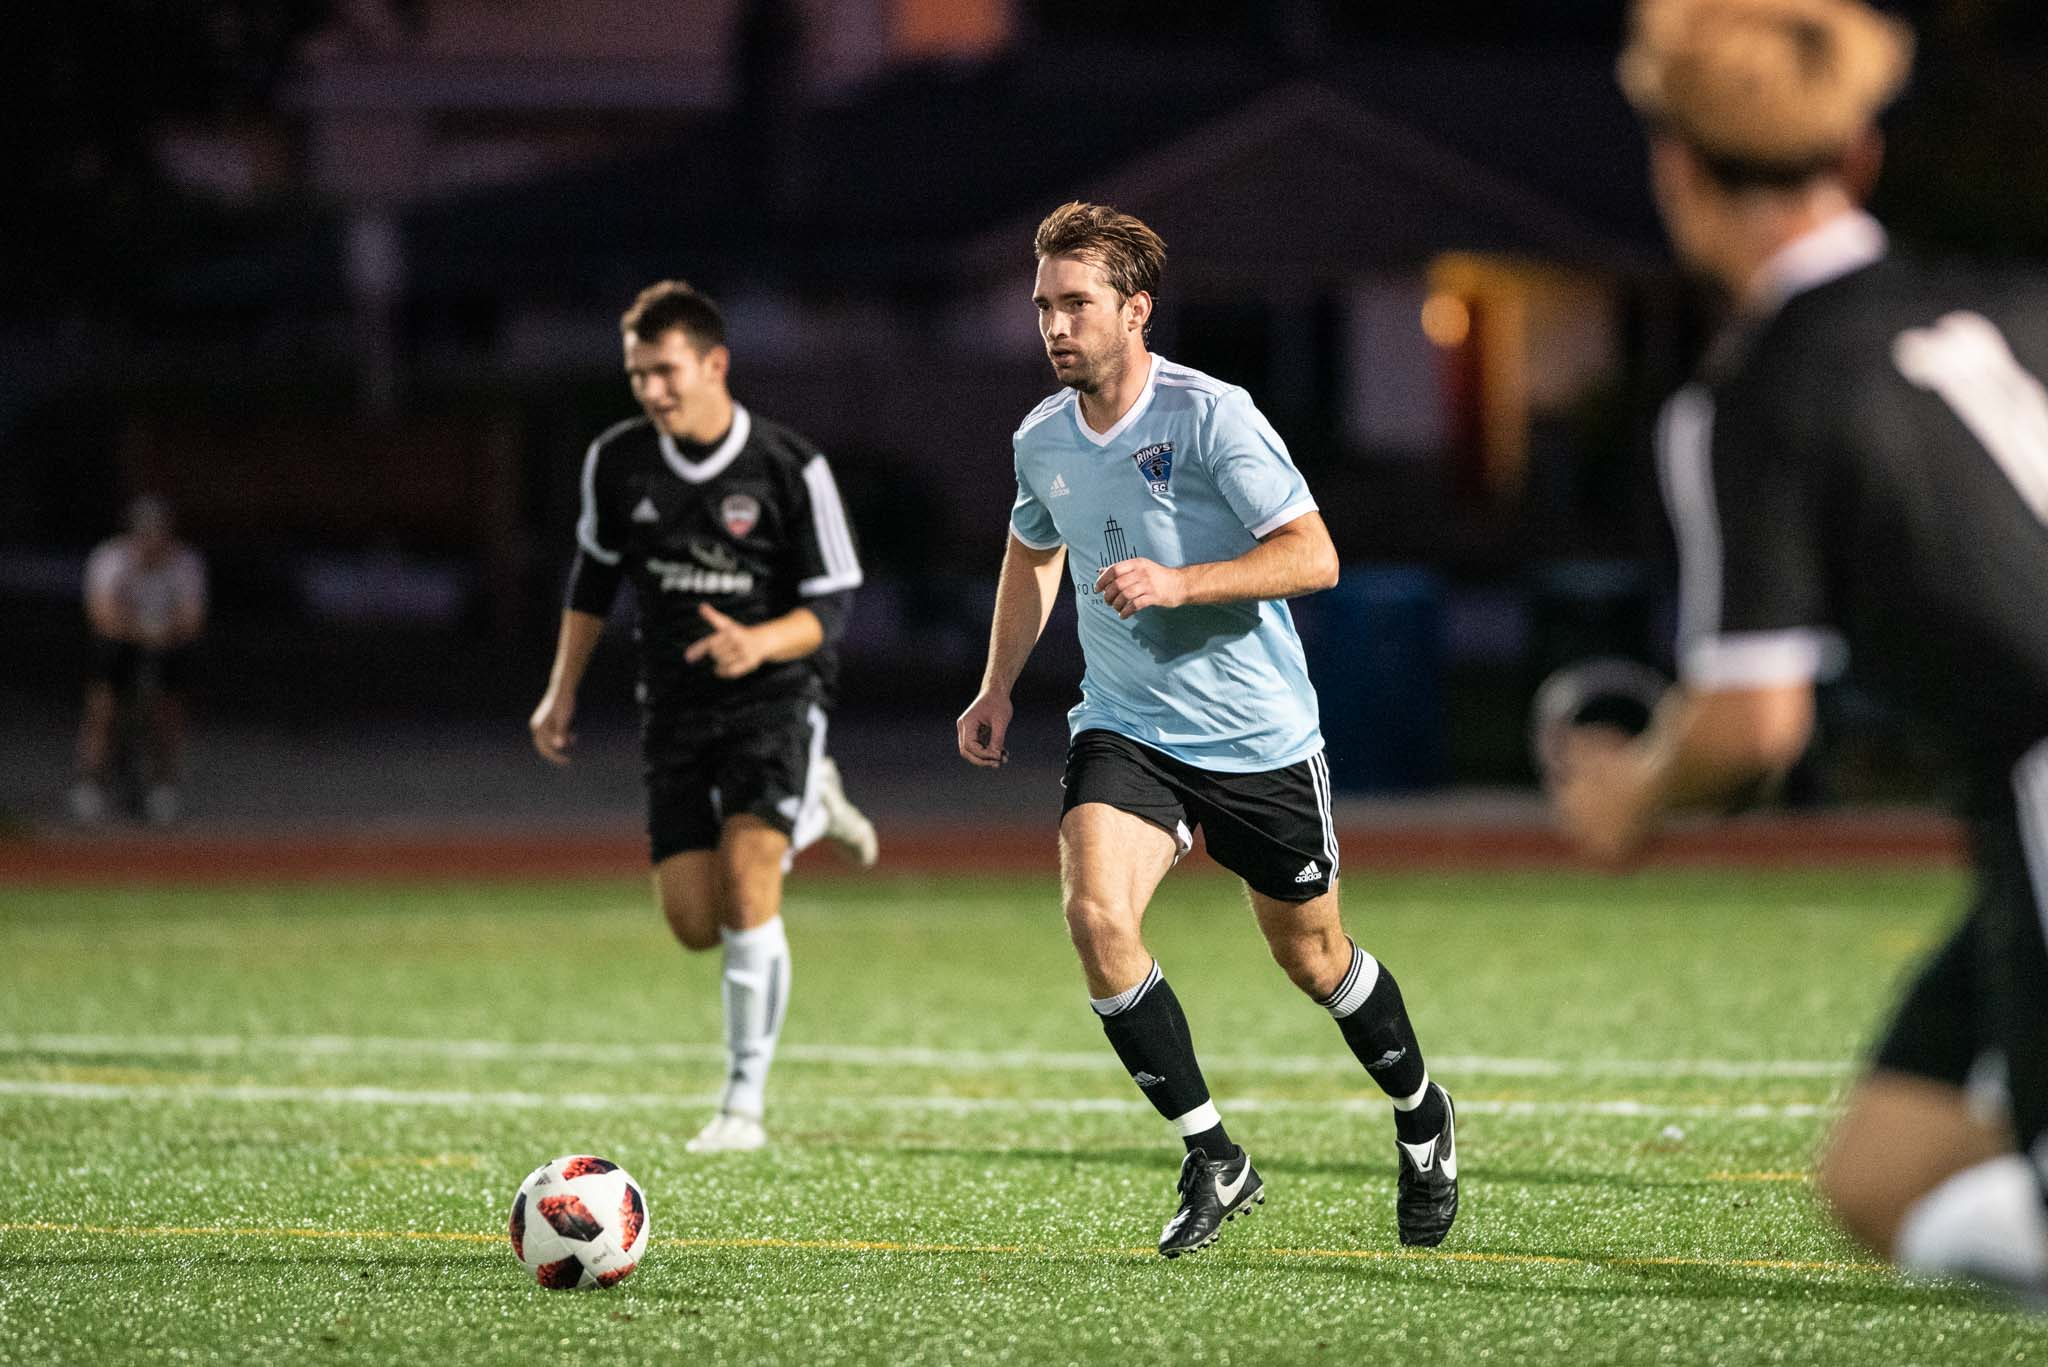 Jamie O'Sullivan in action against Norvan FC during VMSL 2019/20 Season